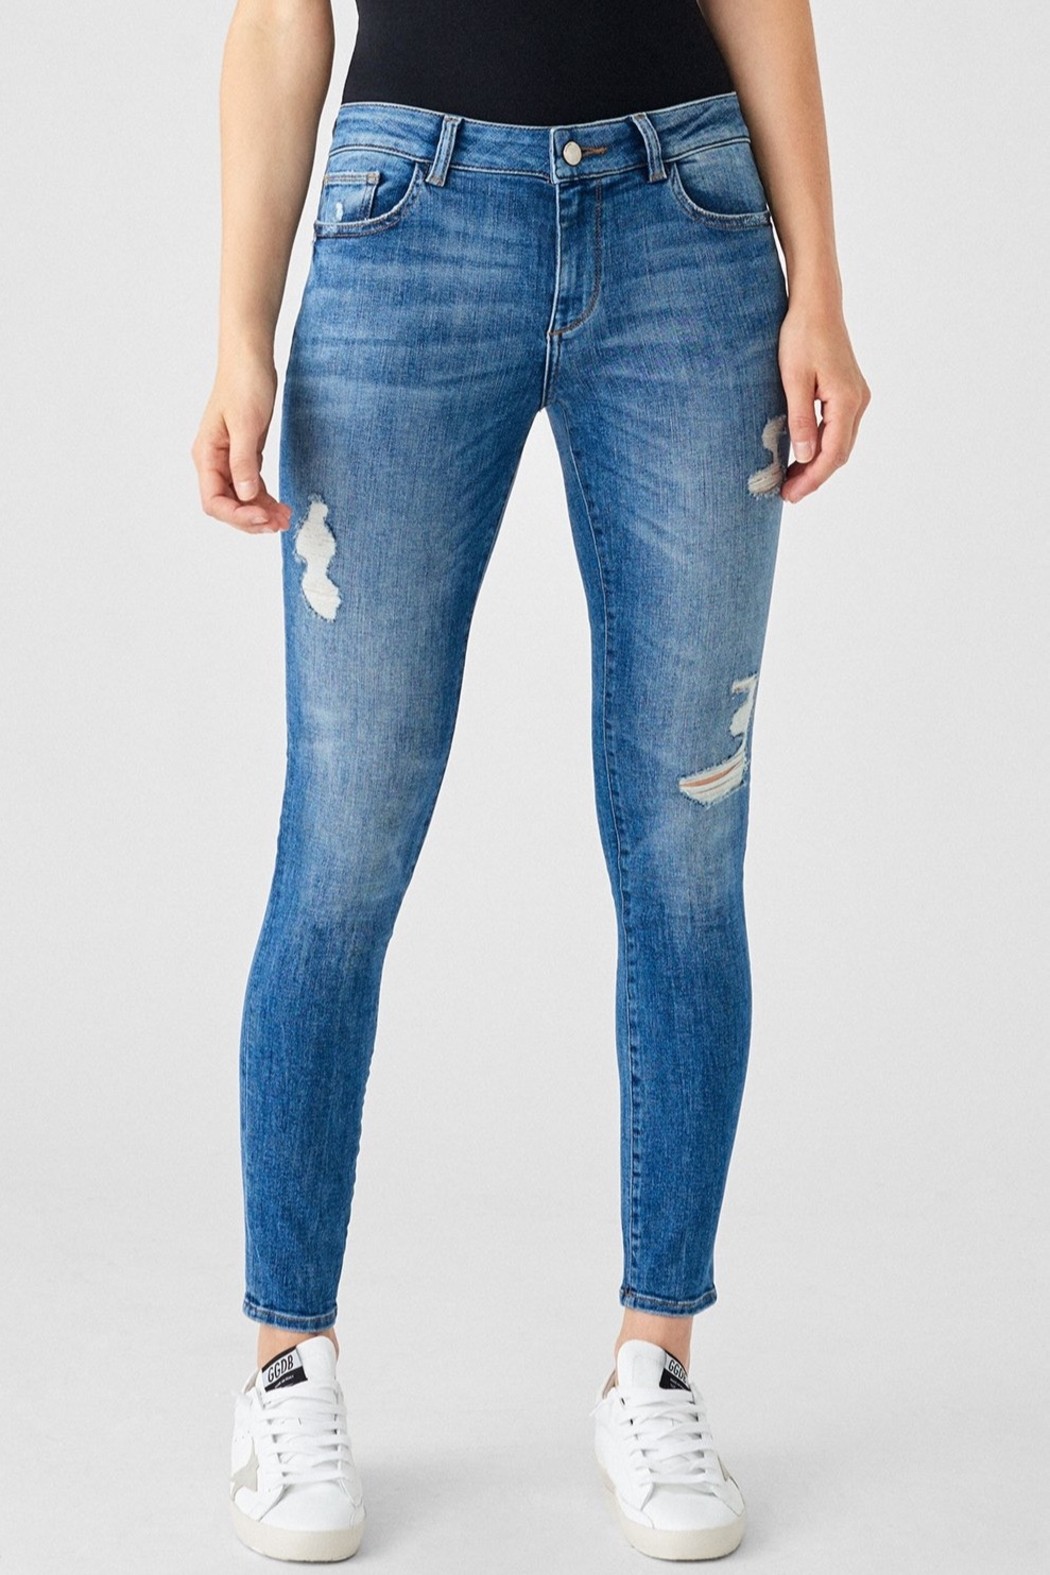 DL1961 Florence Mid Rise Skinny in Full Richland - Side Cropped Image